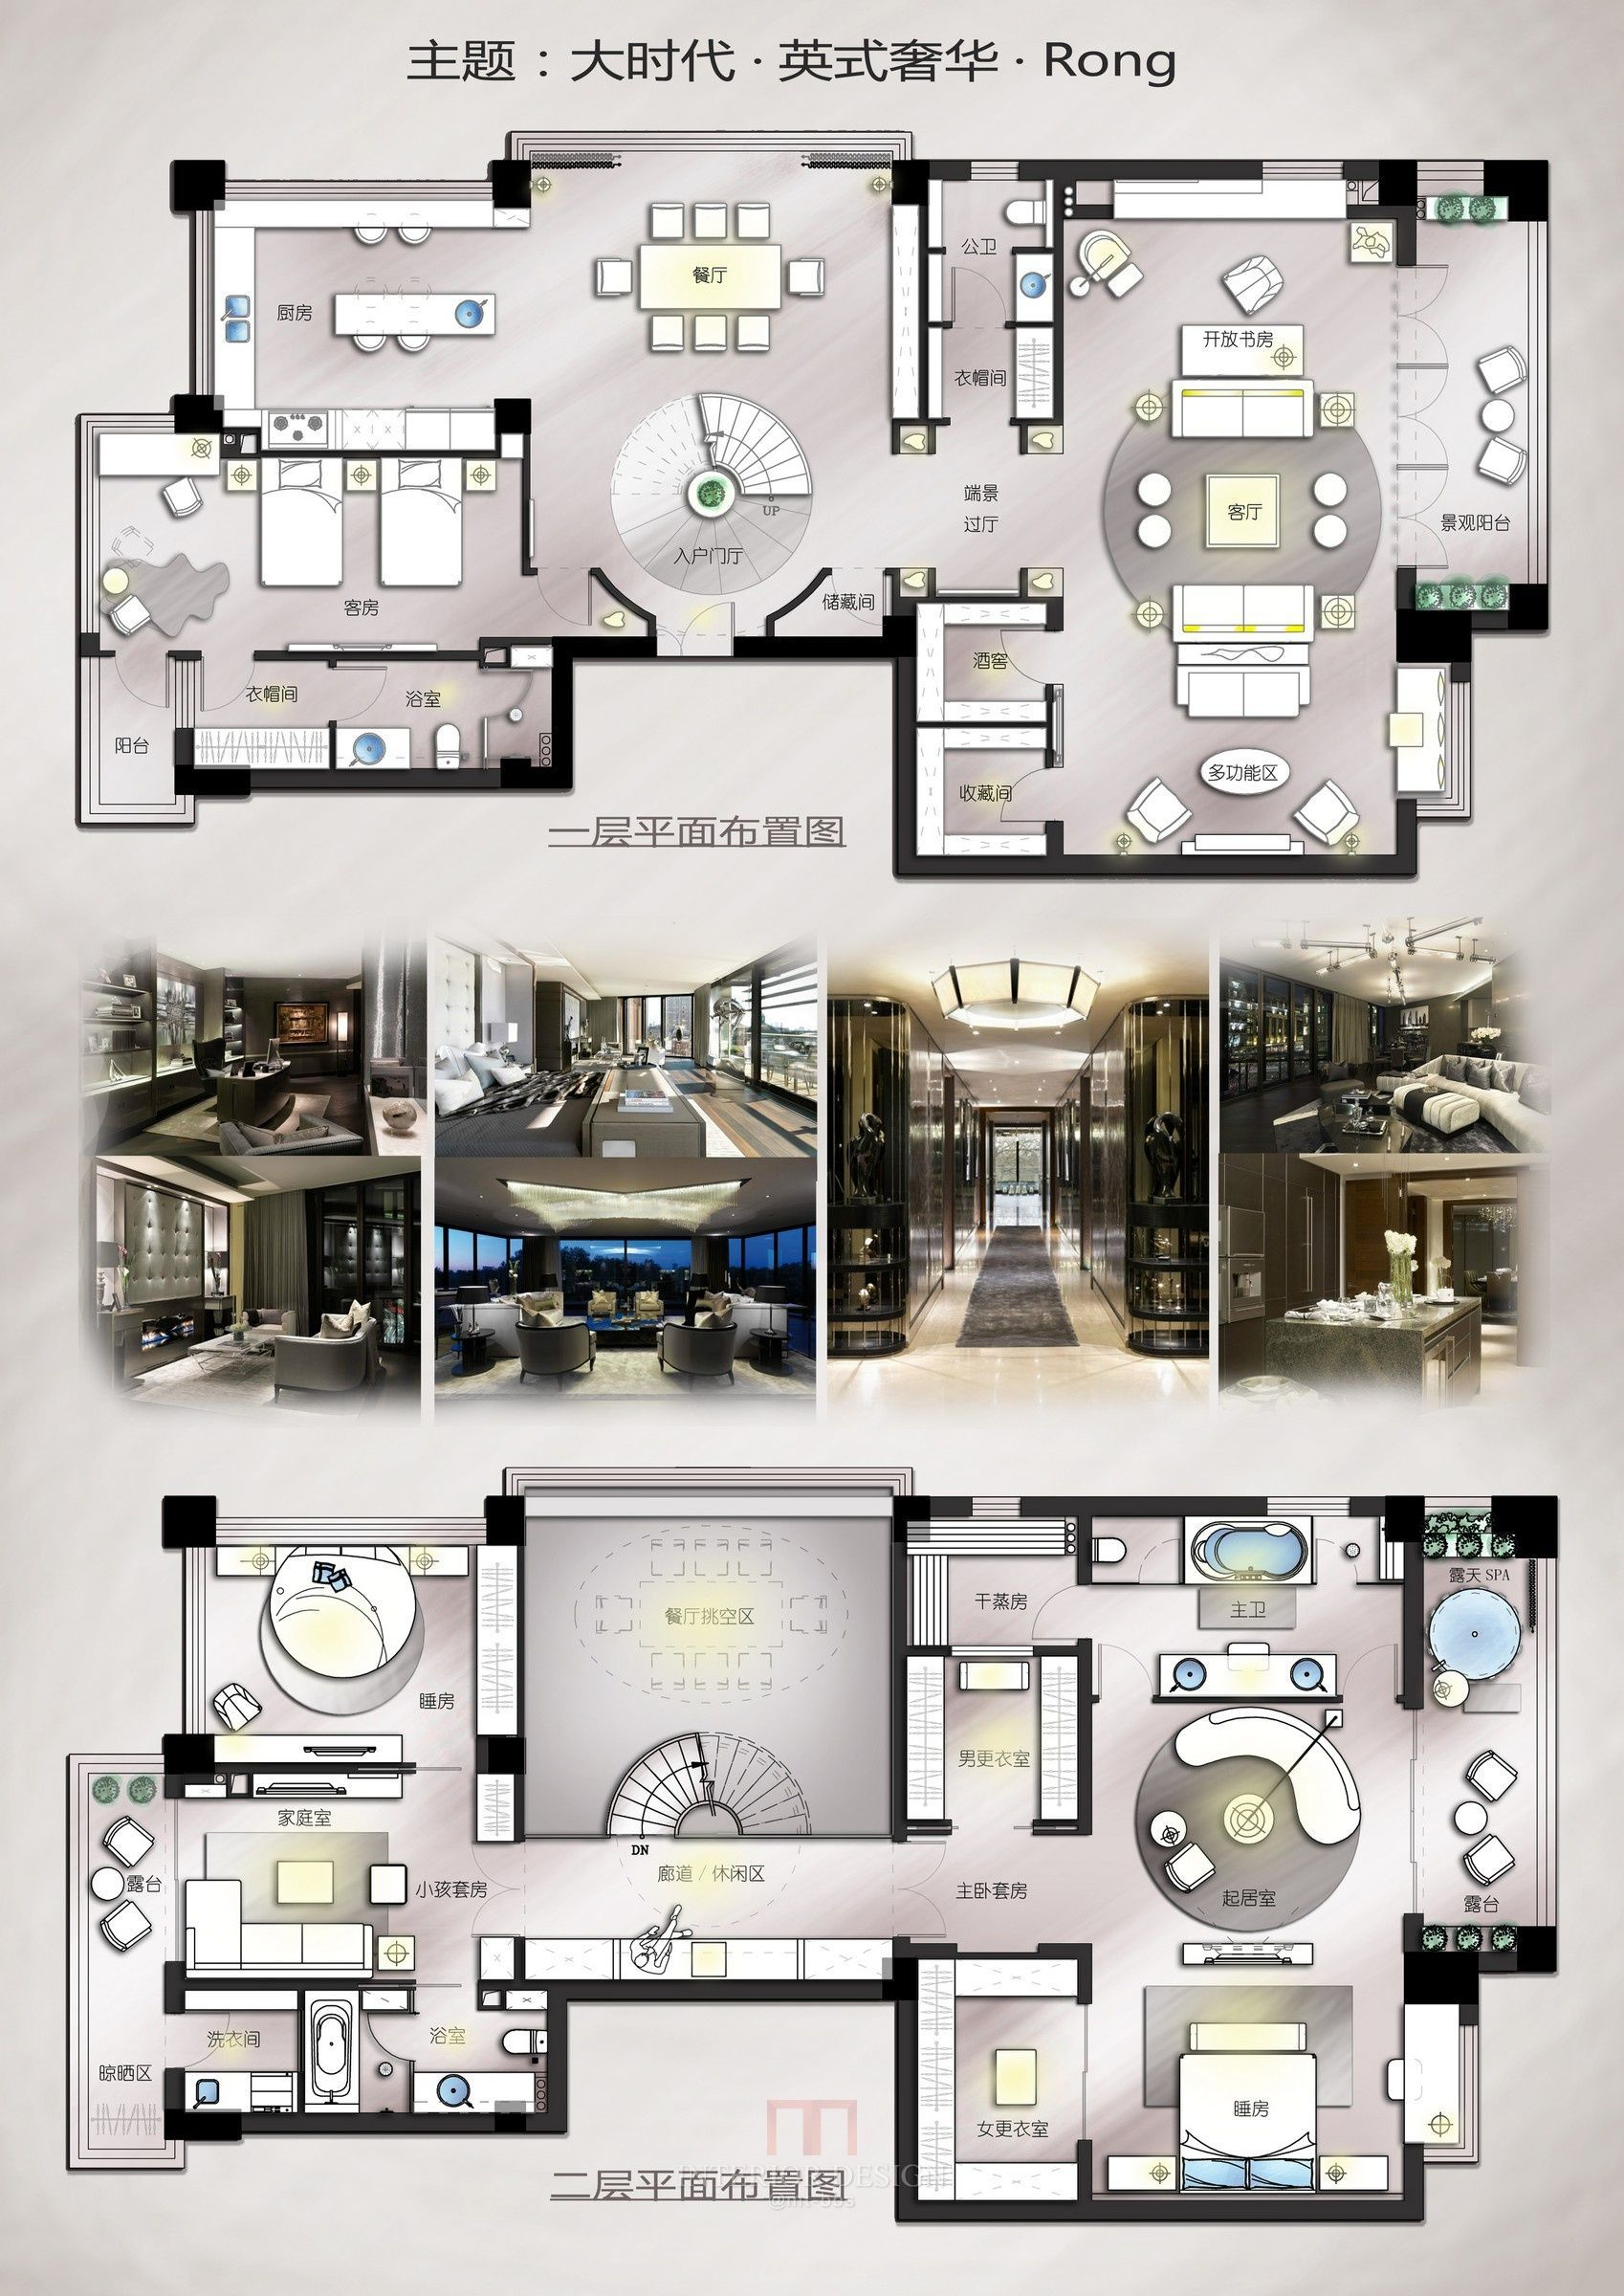 Grundriss Planer Pin By Joelle Khoury On Architecture Floor Plans Grundriss